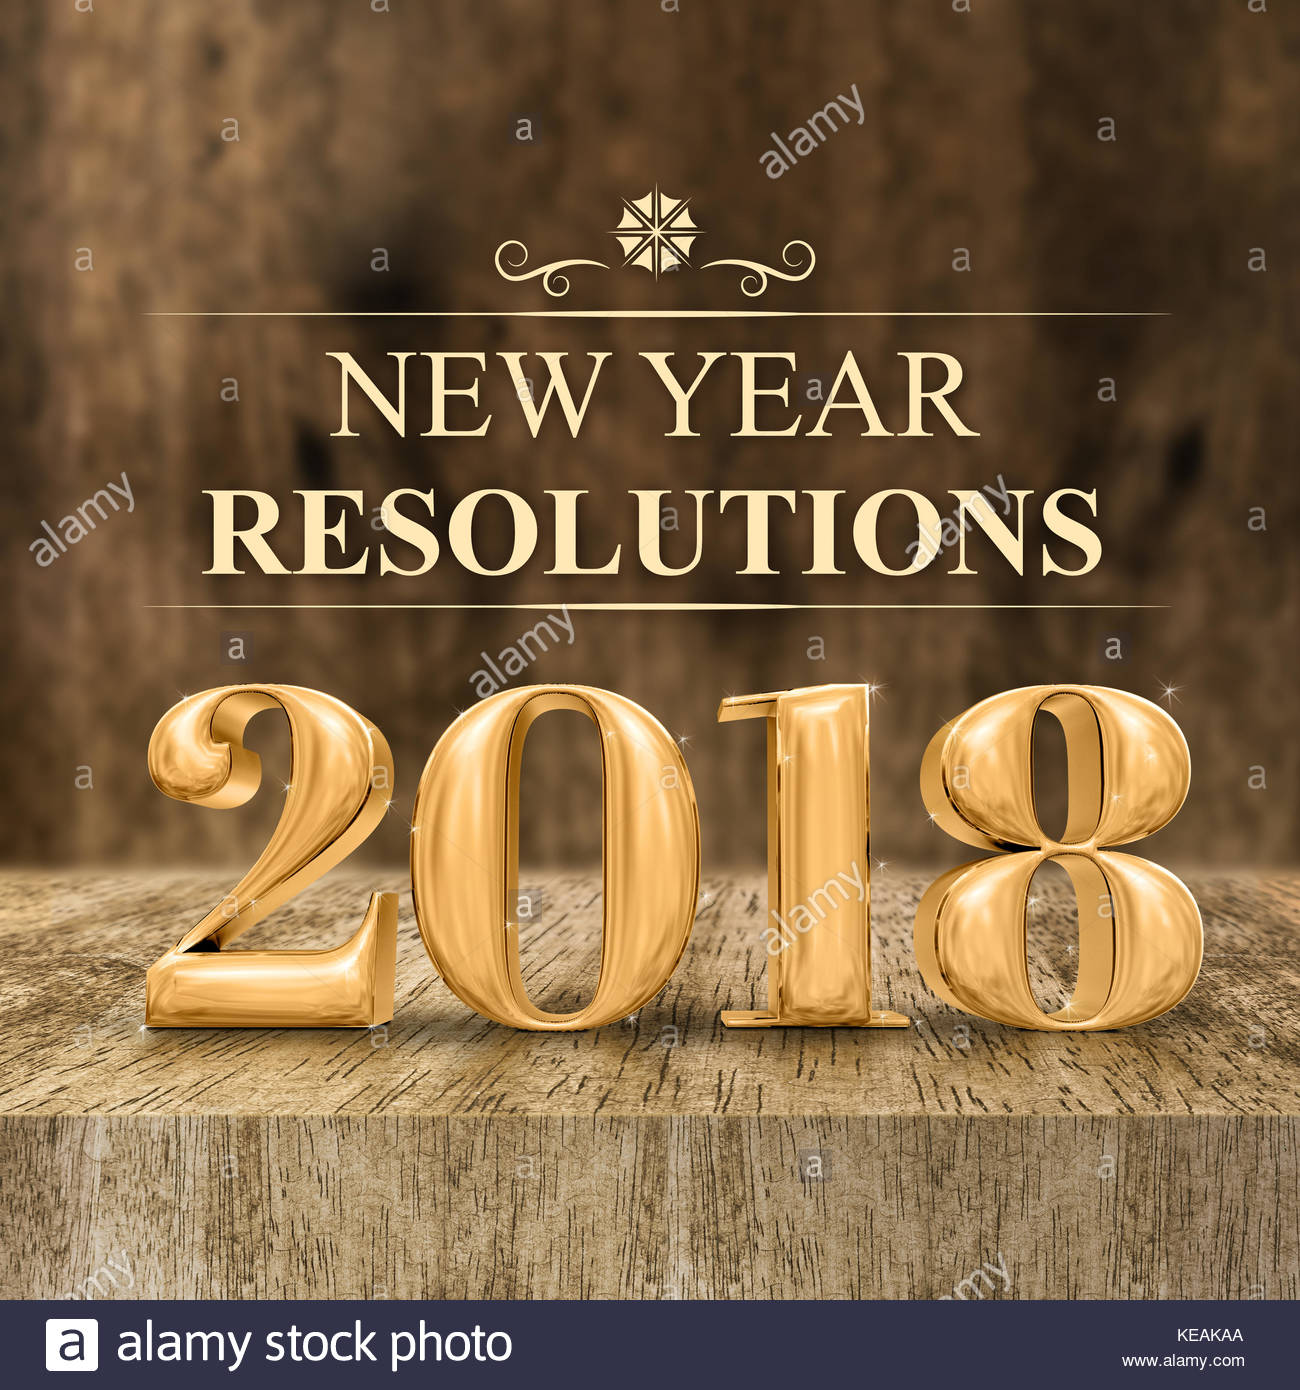 Some Resolutions That You Can Make for 2018! | Guyanese Online